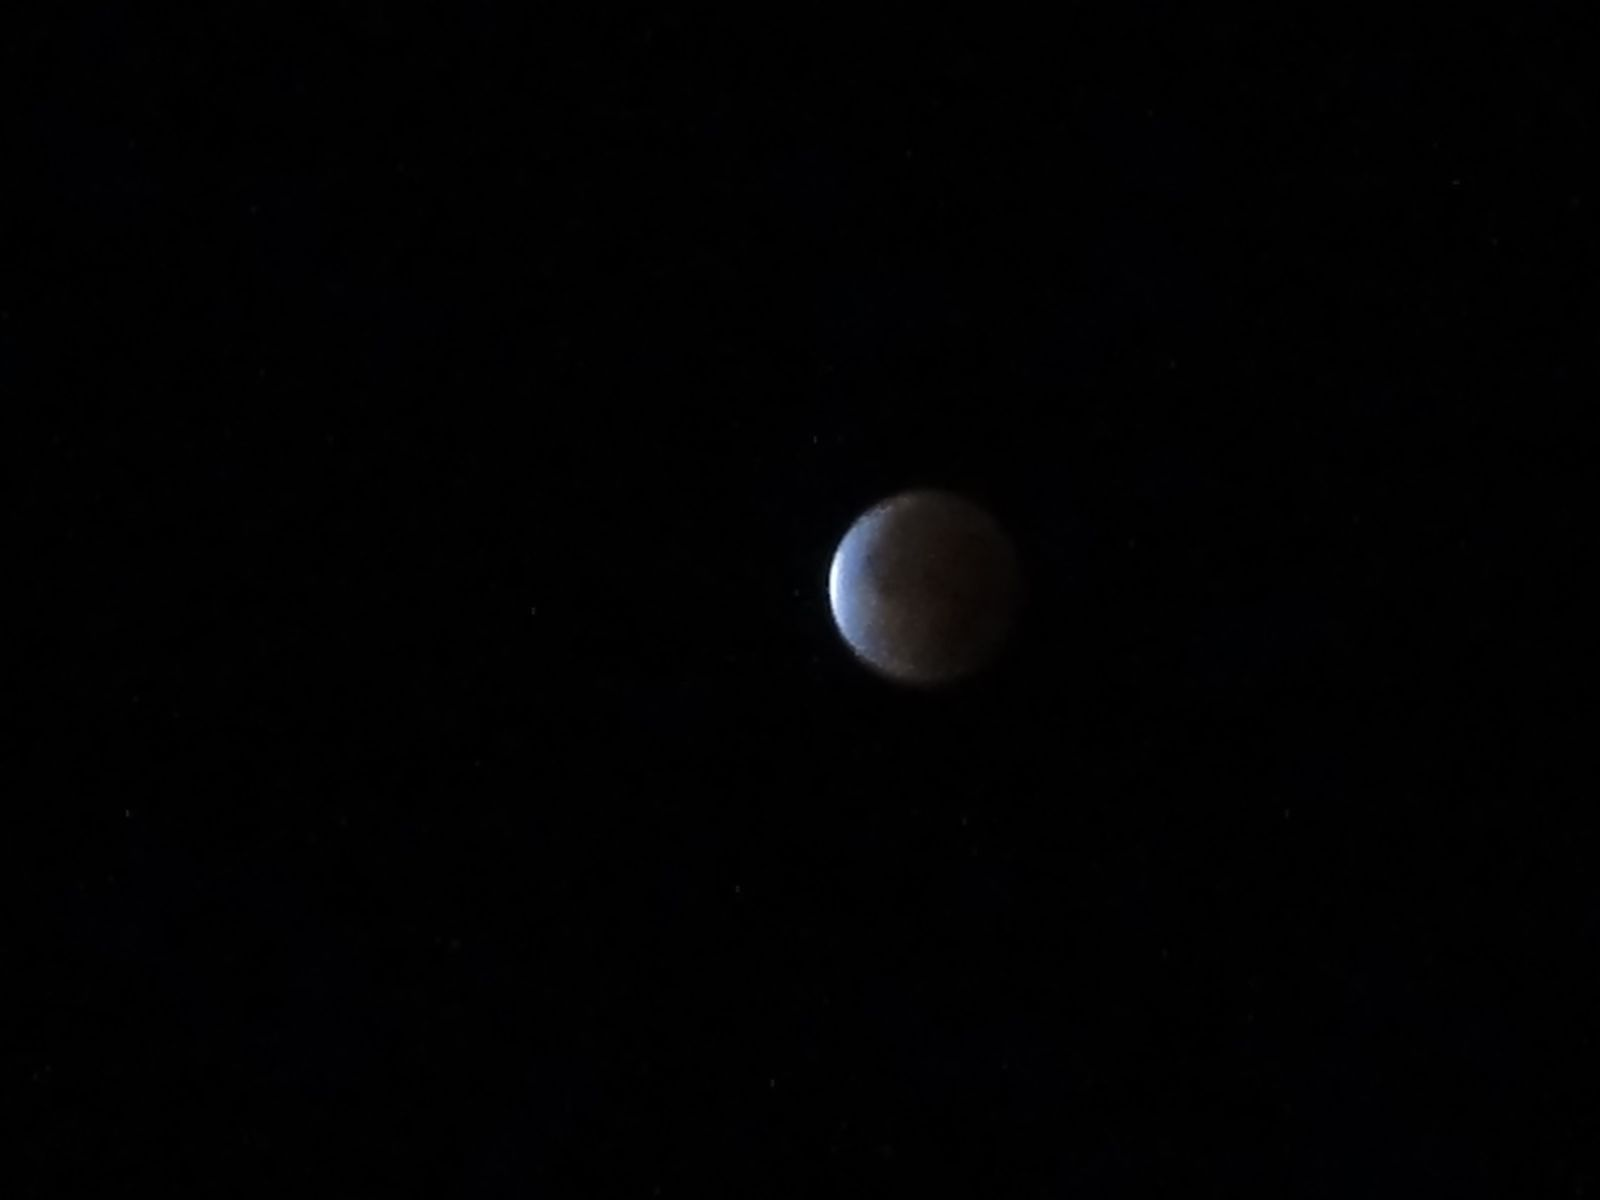 lunar_eclipse_160.jpg